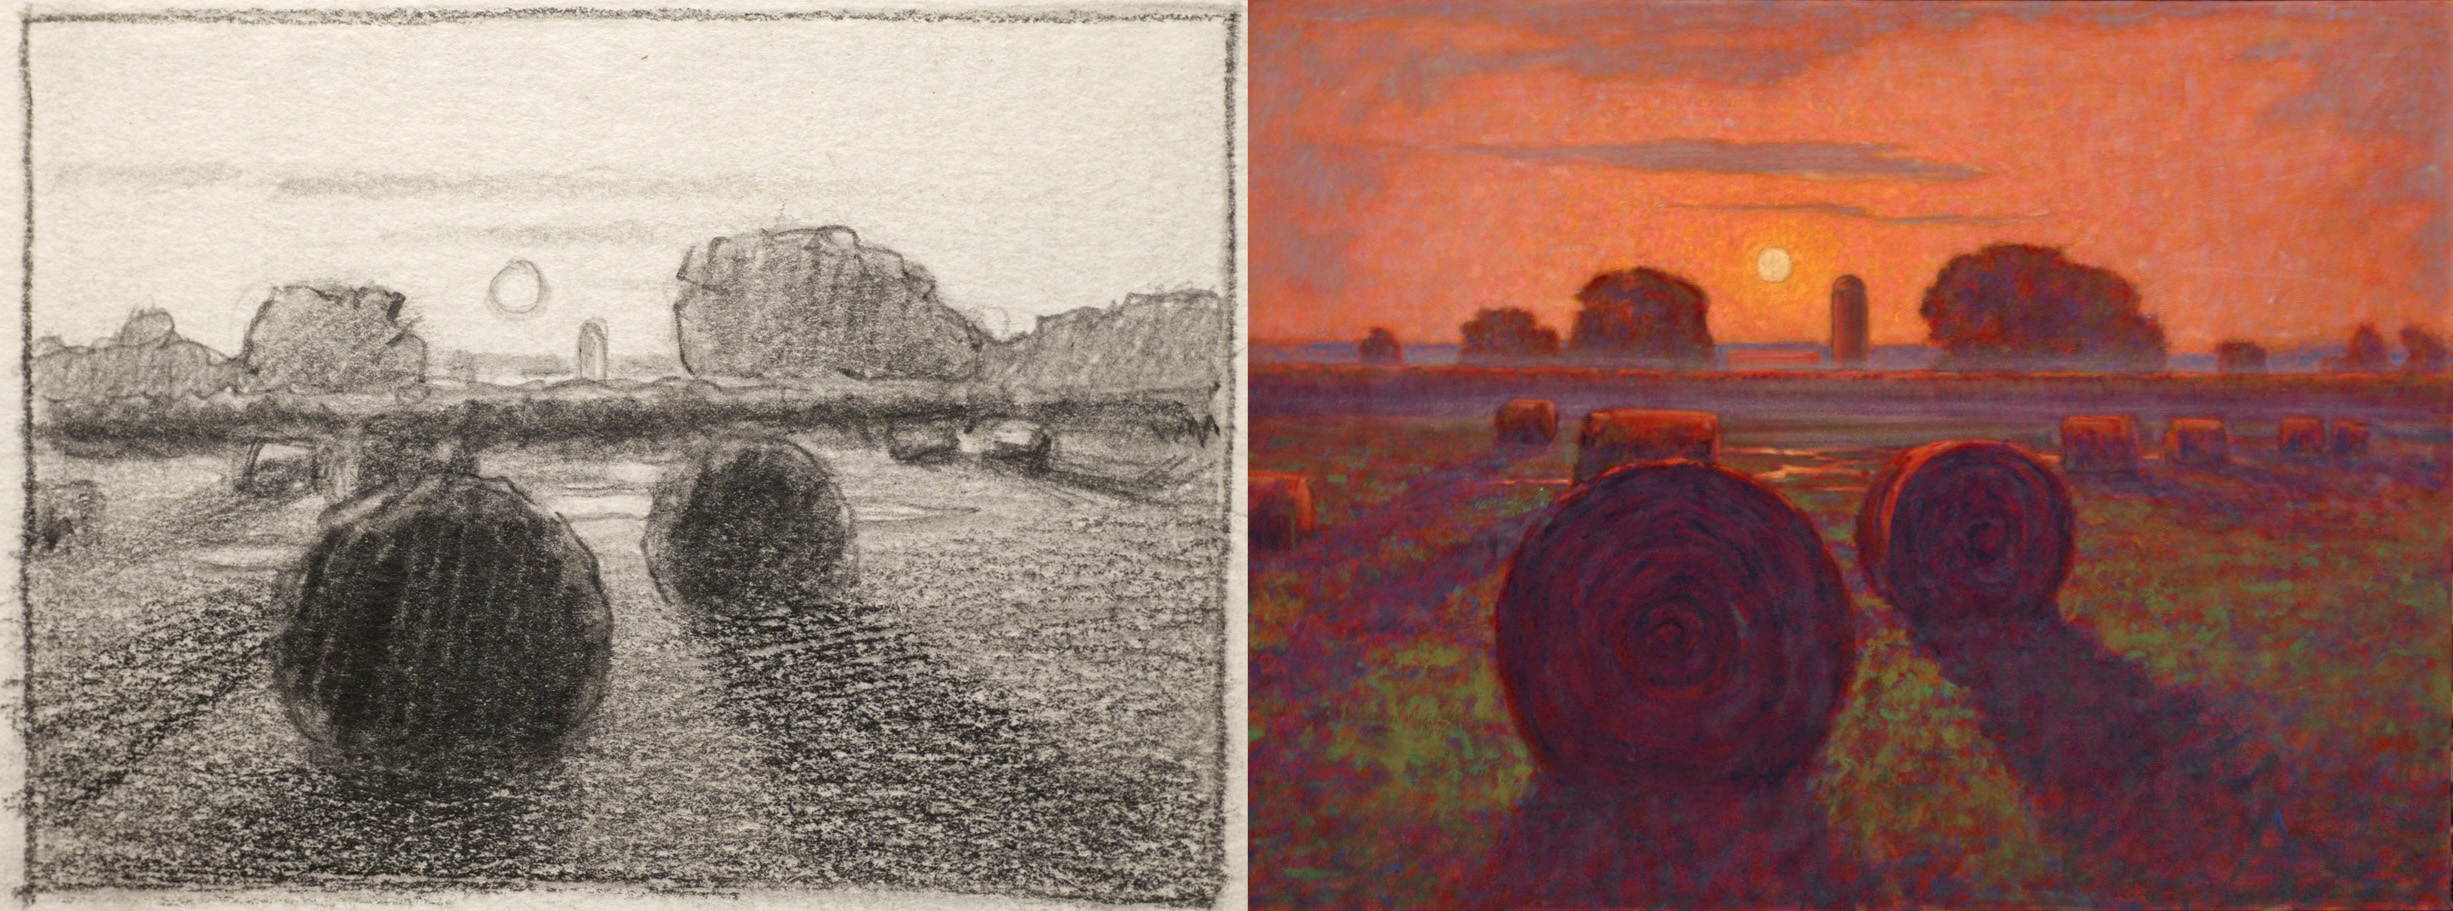 Haybales at Sunset  | study and completed work | 2004